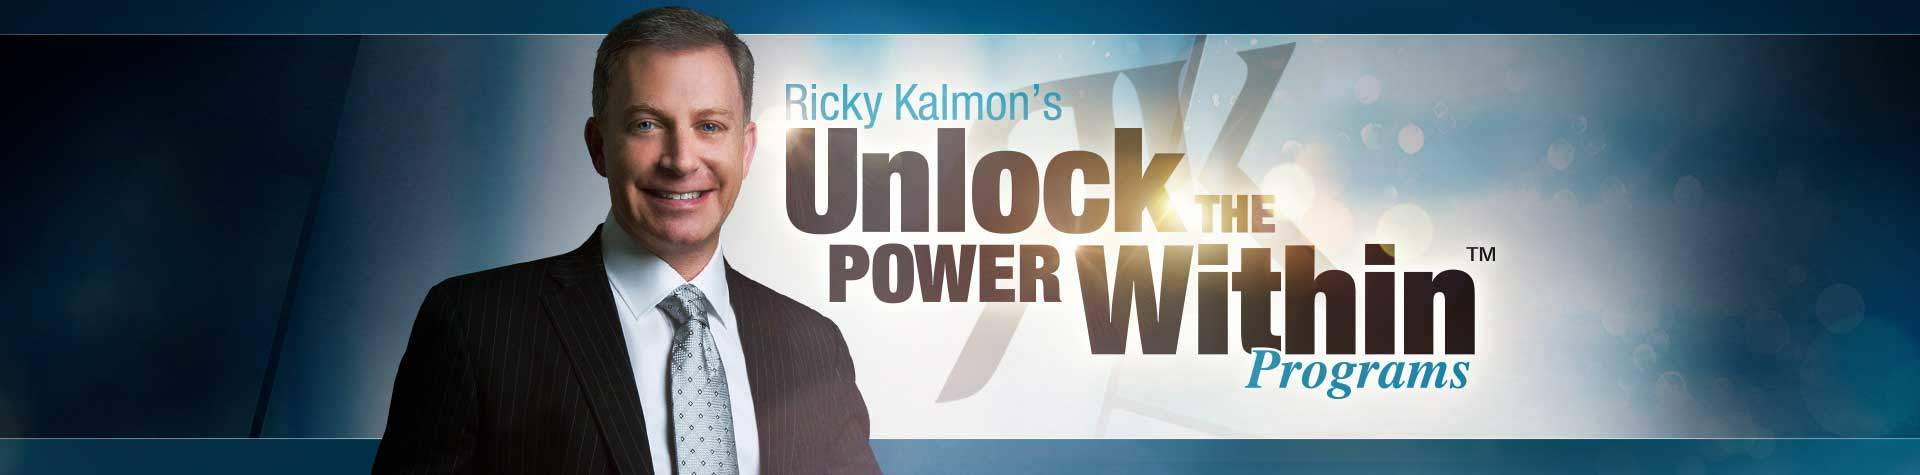 Ricky Kalmon Motivational Speaker